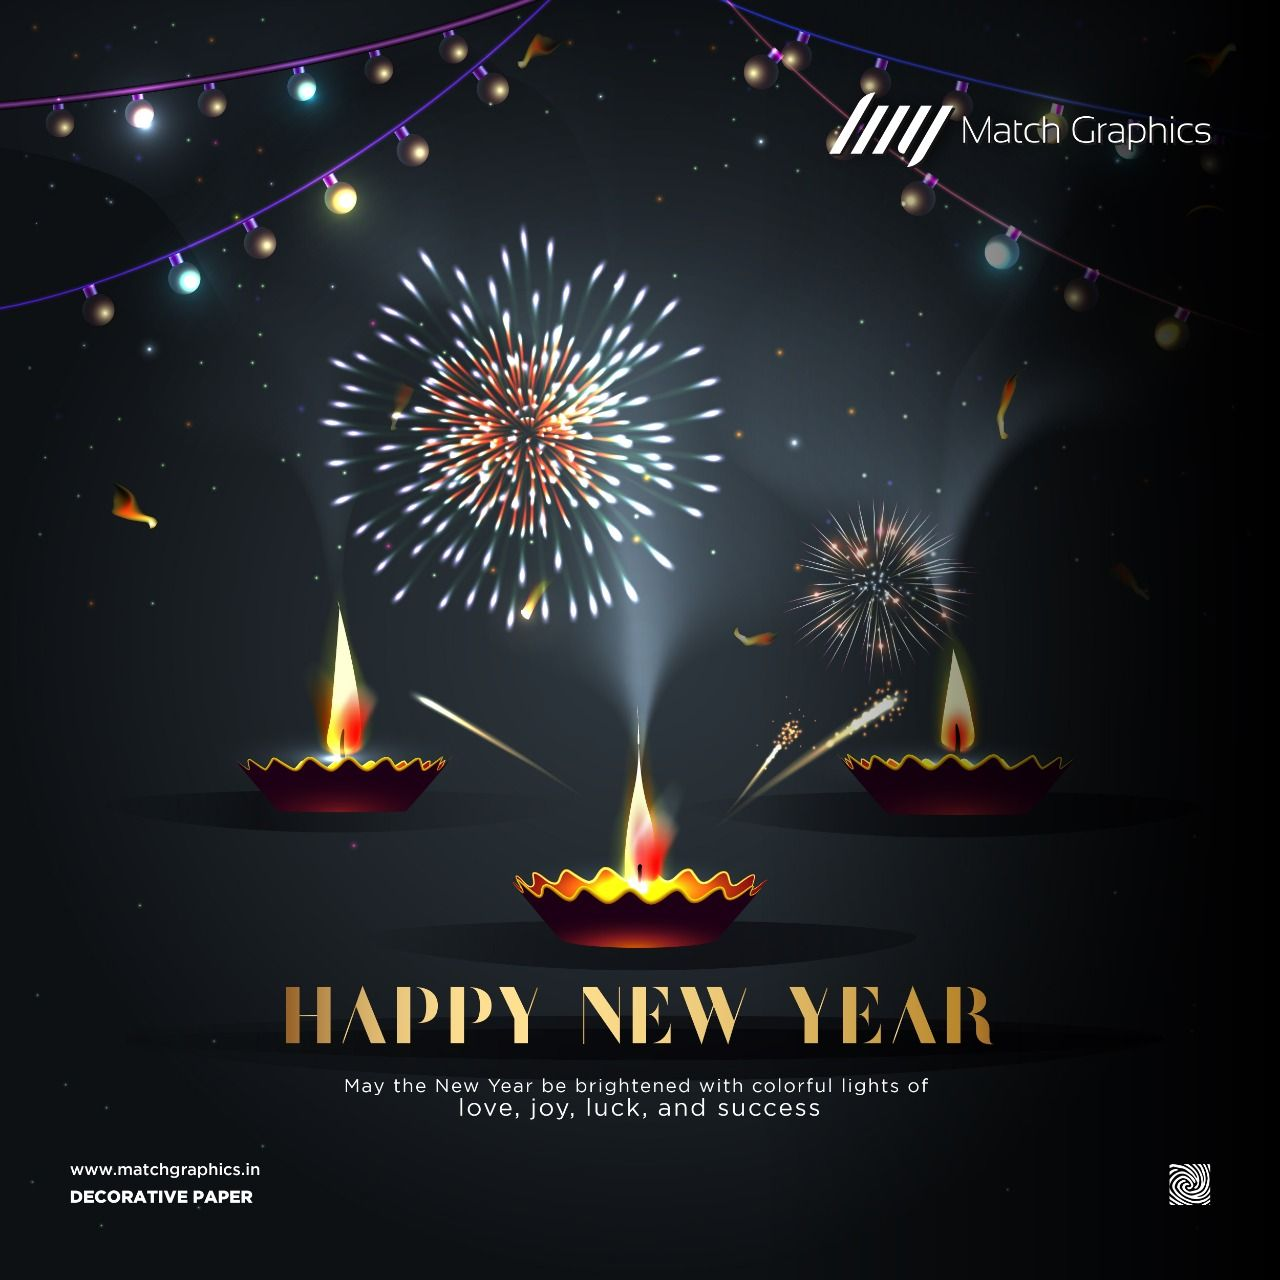 May The New Year Be Brightened With Colorful Lights Of Love Joy Luck And Success Happy New Year Matchgr Happy New Year India Happy New Year Happy Diwali